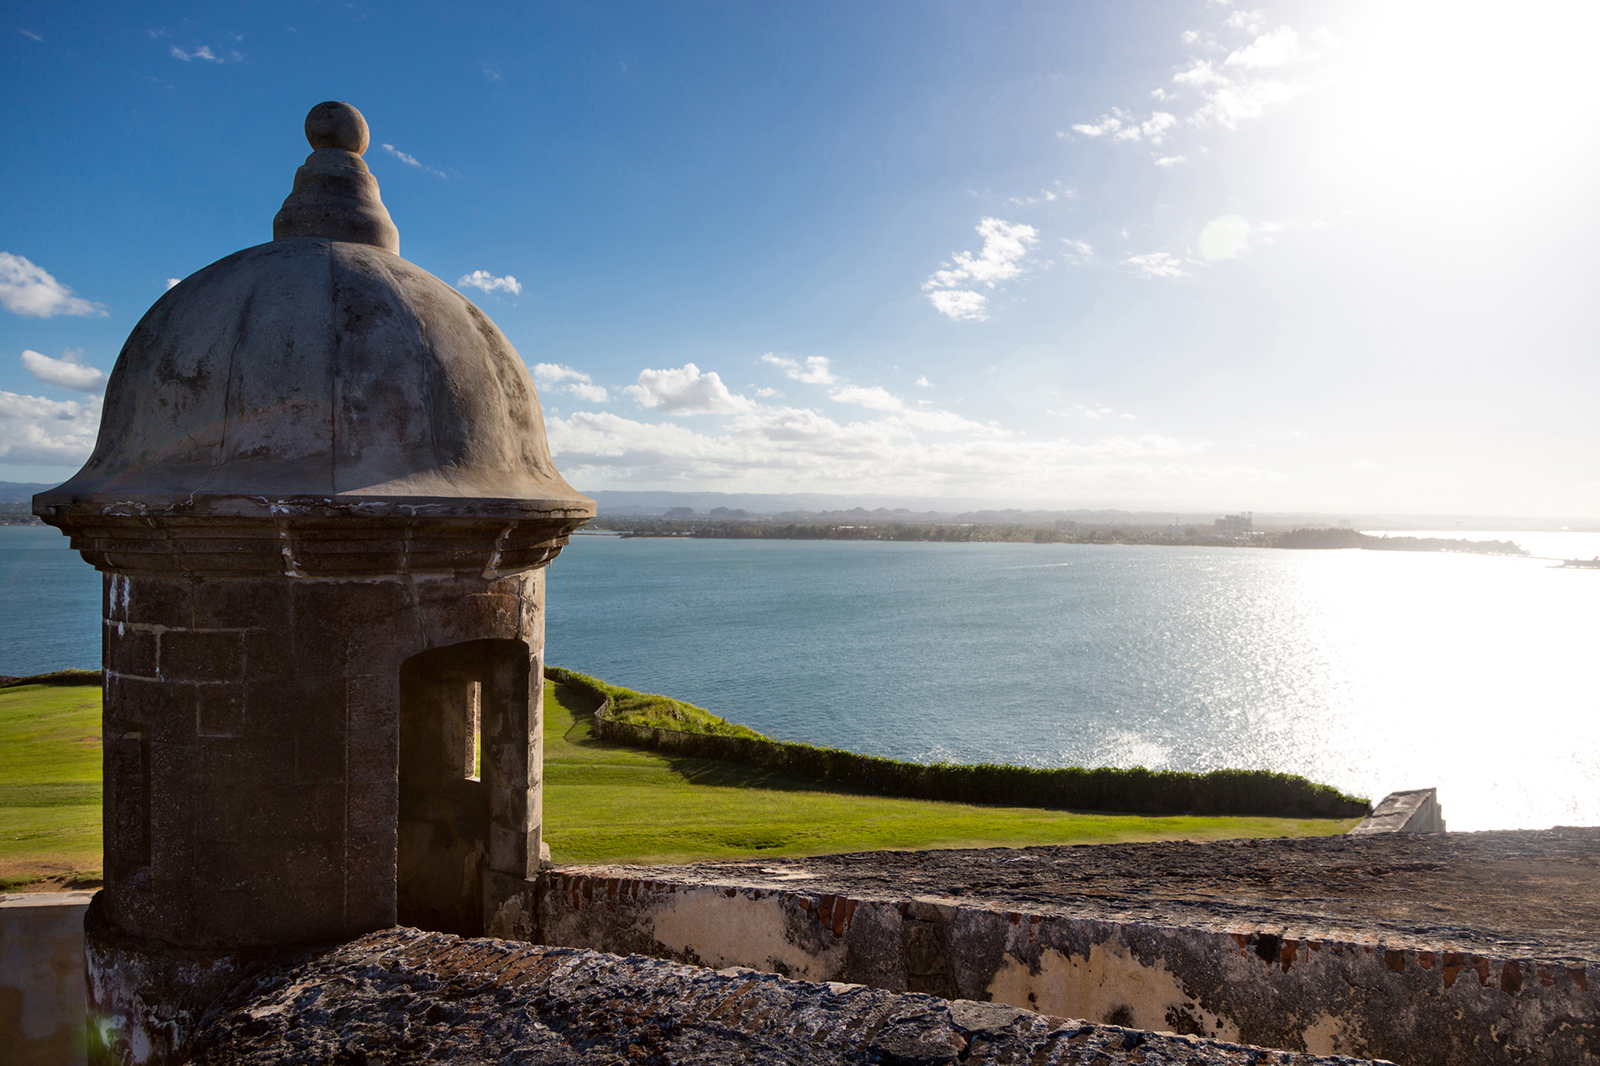 View of a garita and the ocean from El Morro, in Old San Juan.